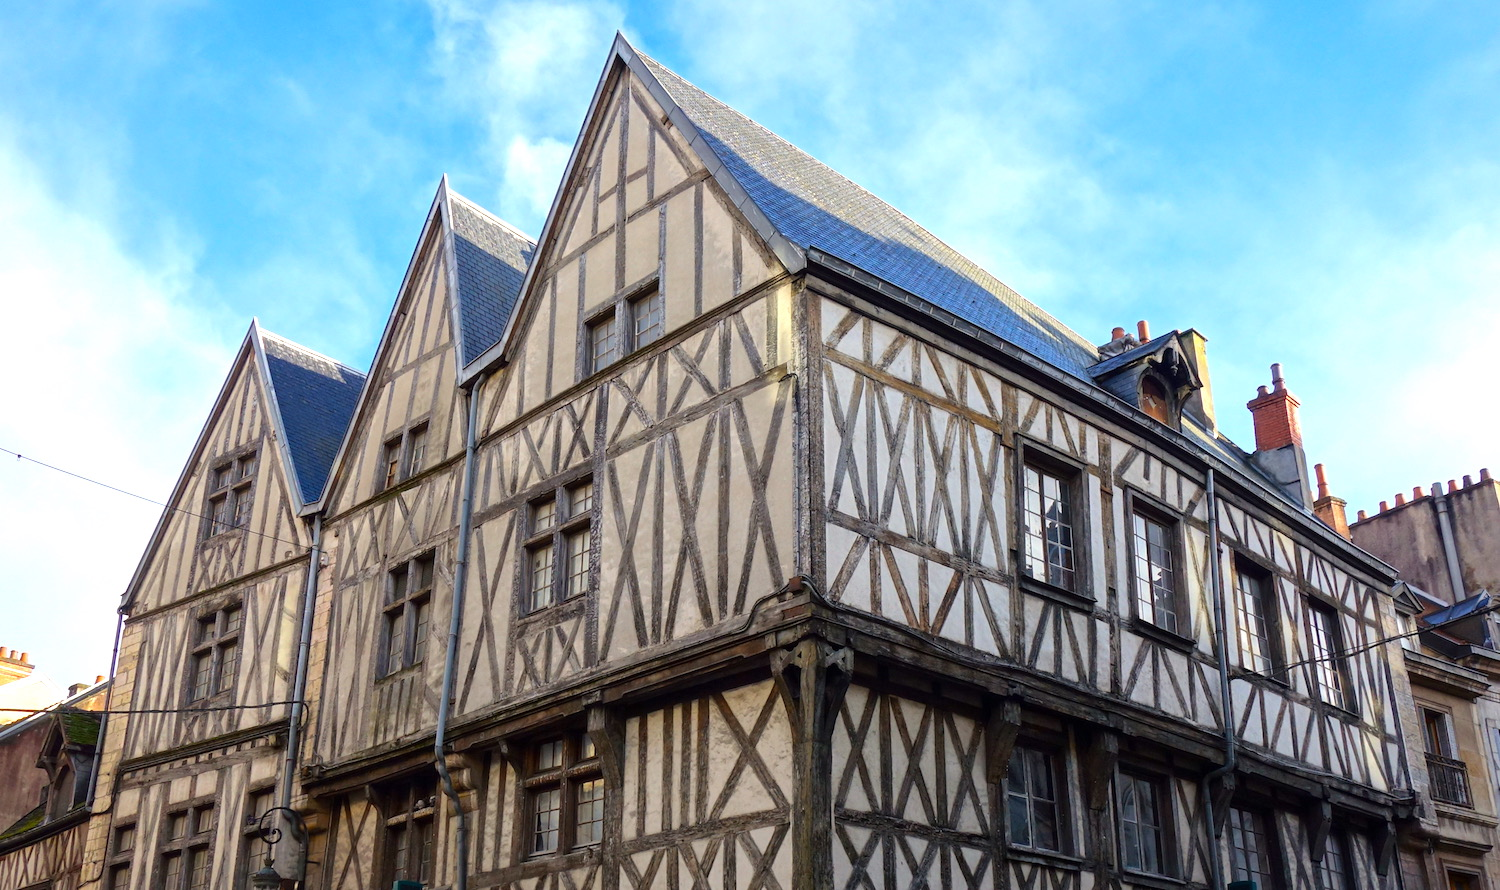 An introduction to dijon 39 s medieval architecture in 10 for Architecture maison de maitre